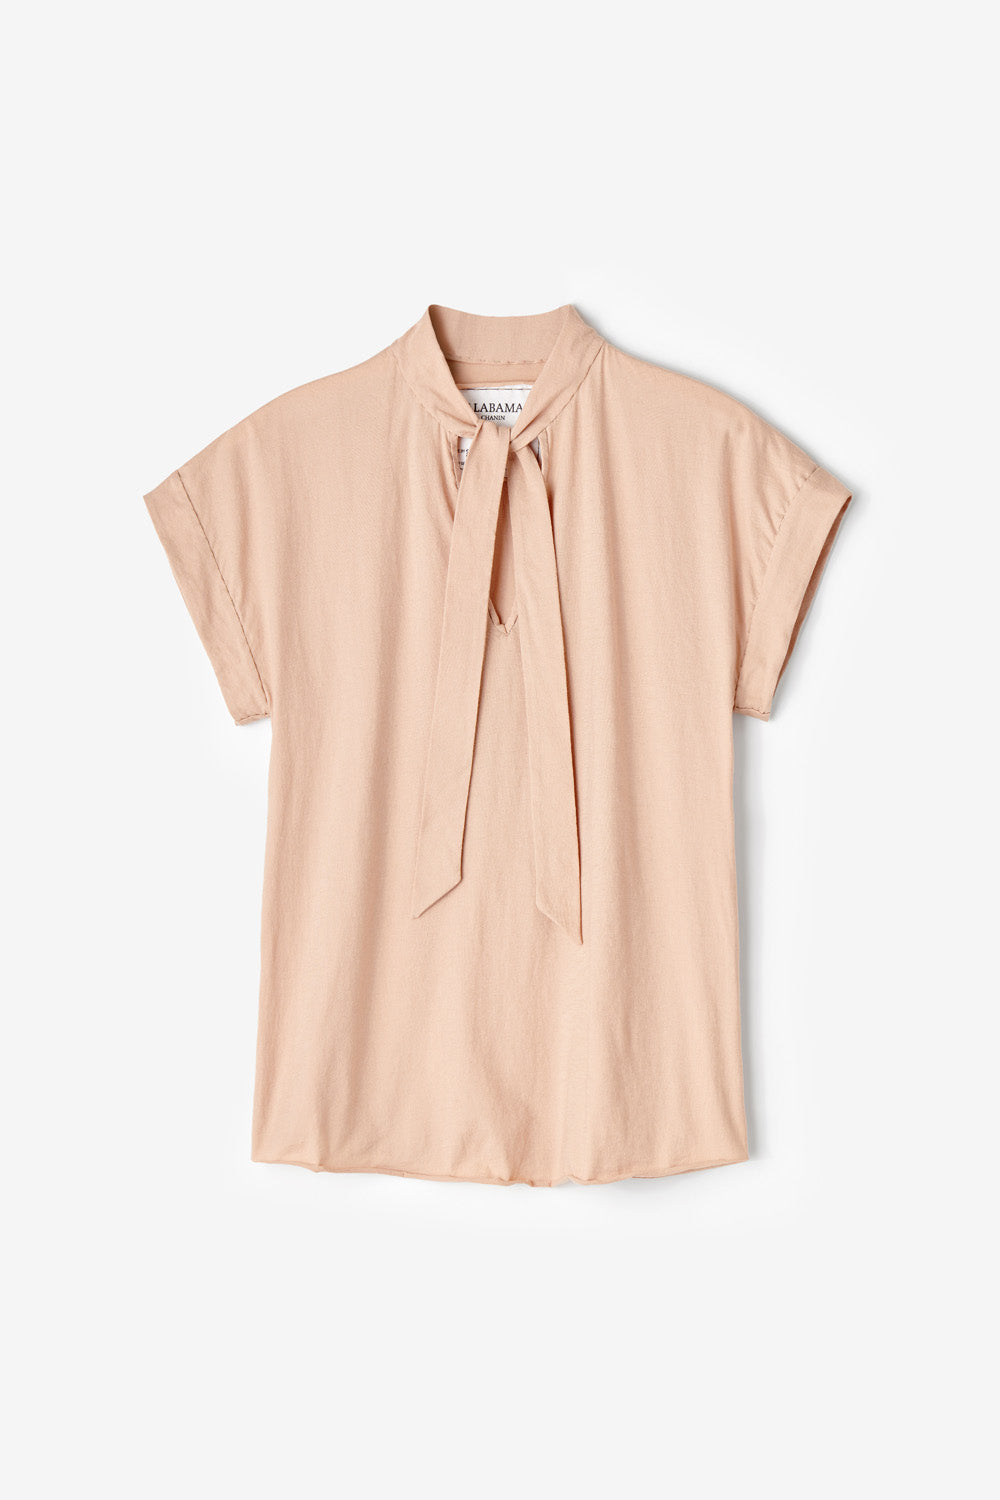 Alabama Chanin Naomi Top Hand Sewn Organic Cotton Top with Bow Tie Closure in Pink